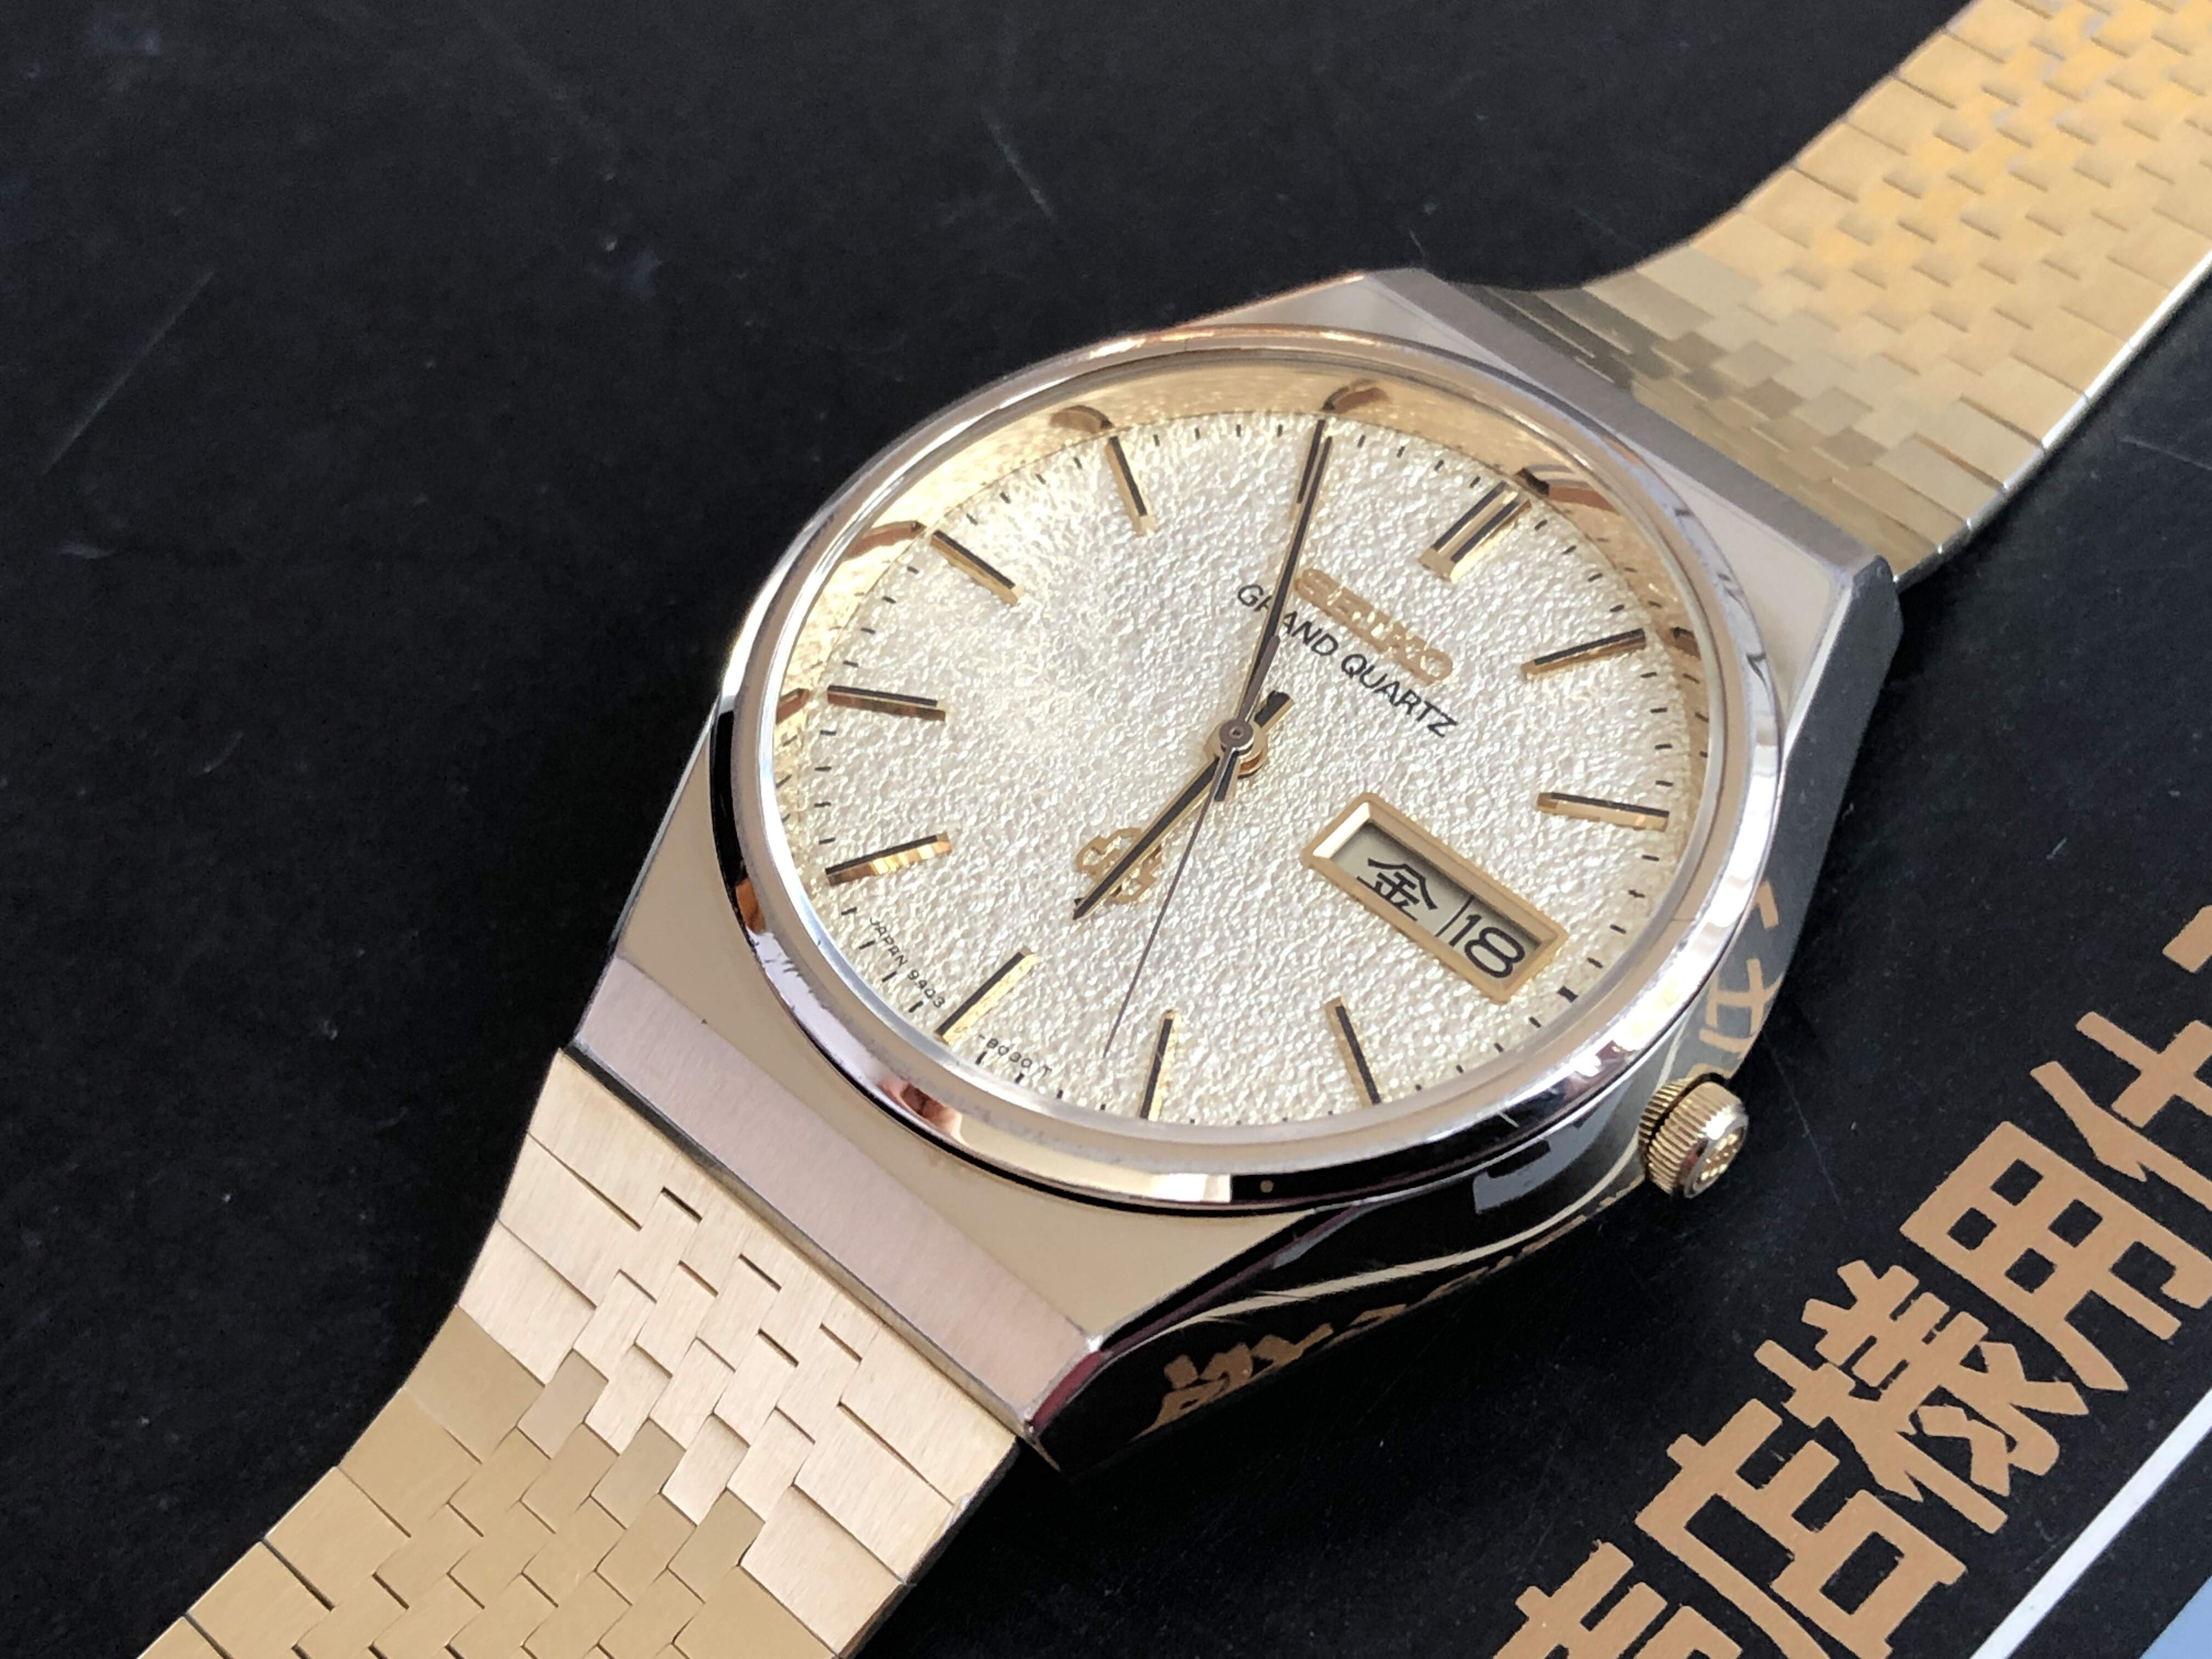 Seiko Grand Quartz 9943-8020 QGB804 Diamond Dust Gold (Sold)